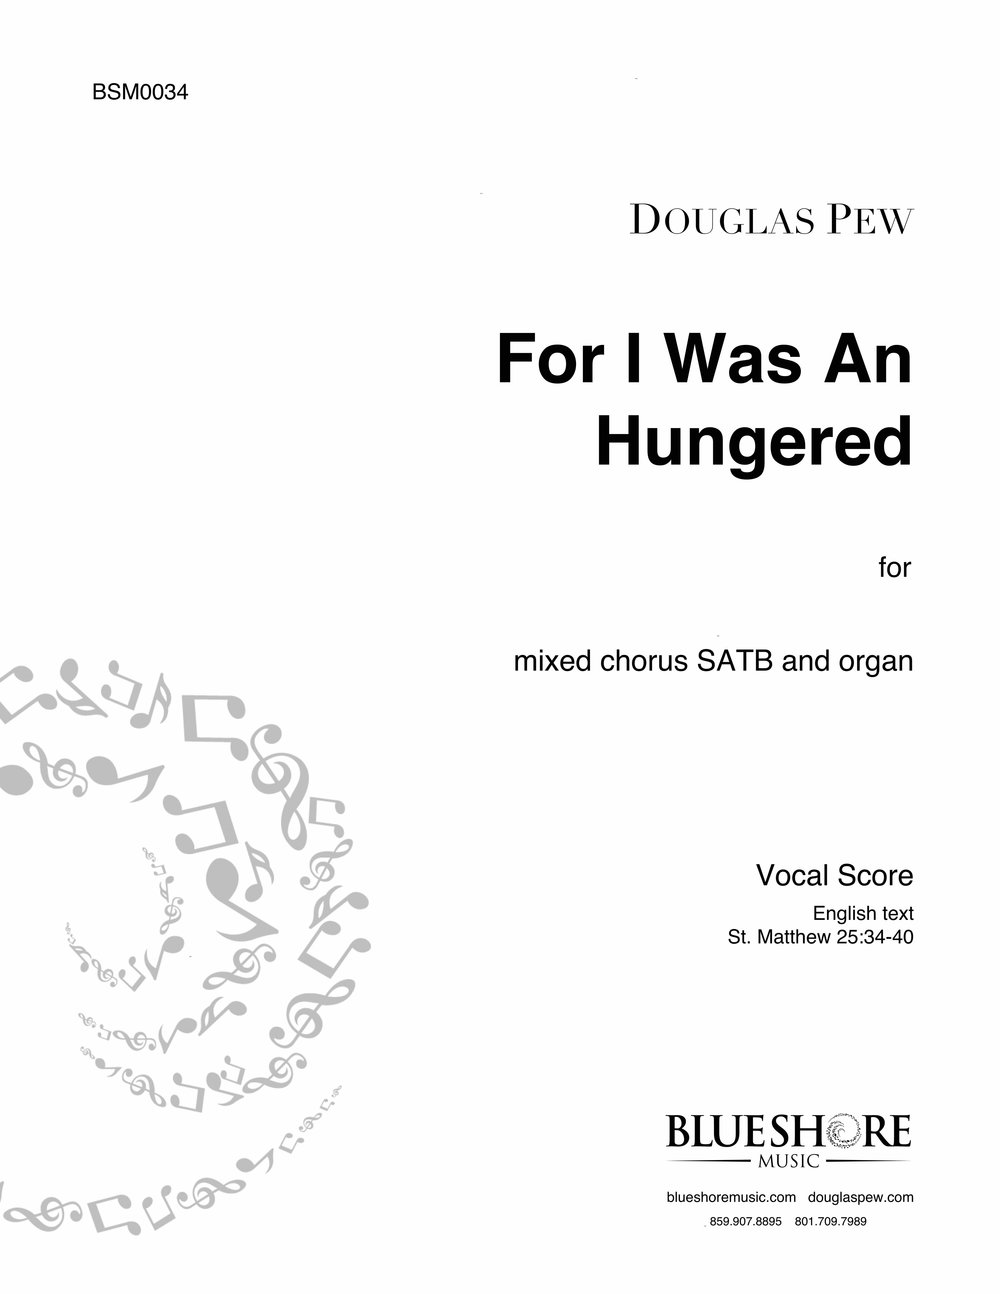 For I Was An Hungered An Anthem for SATB and Organ. Text from St. Matthew 24:34-40, KJV.